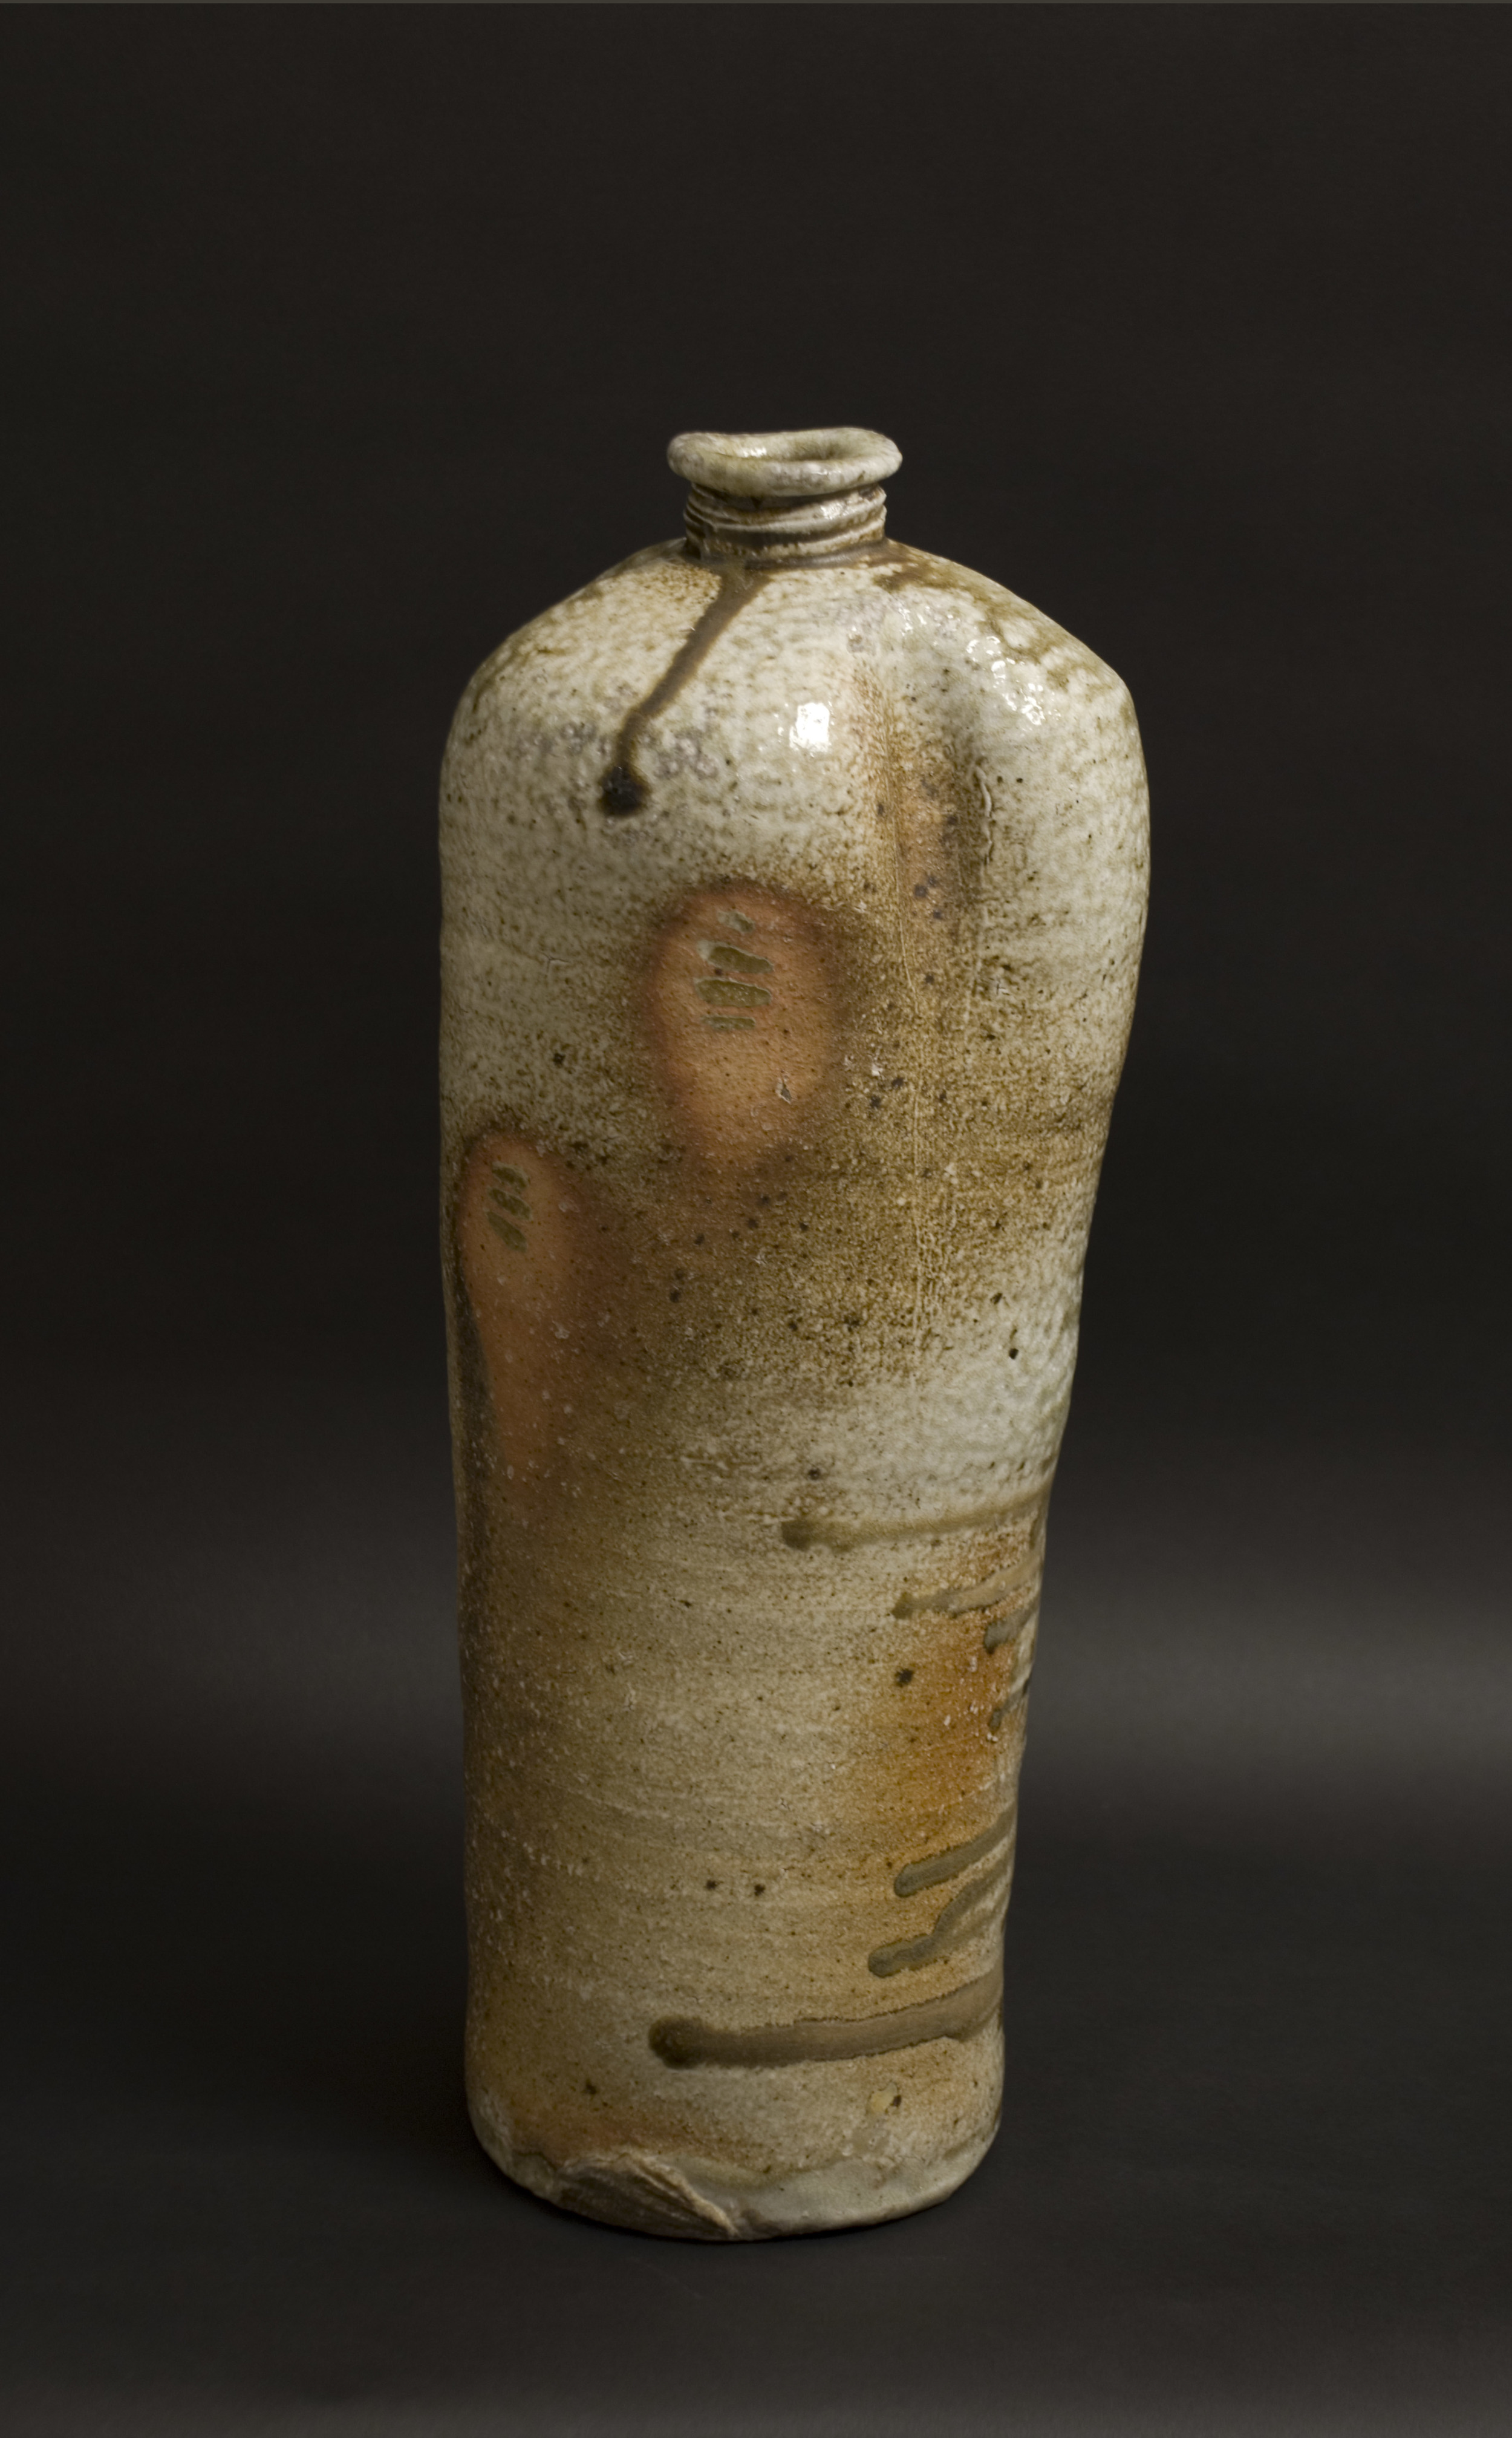 Owen Rye    Tall Bottle  , 2008 Woodfired Stoneware 17 x 7 x 7 inches  /  43.2 x 17.8 x 17.8 cm  /  OWR 1